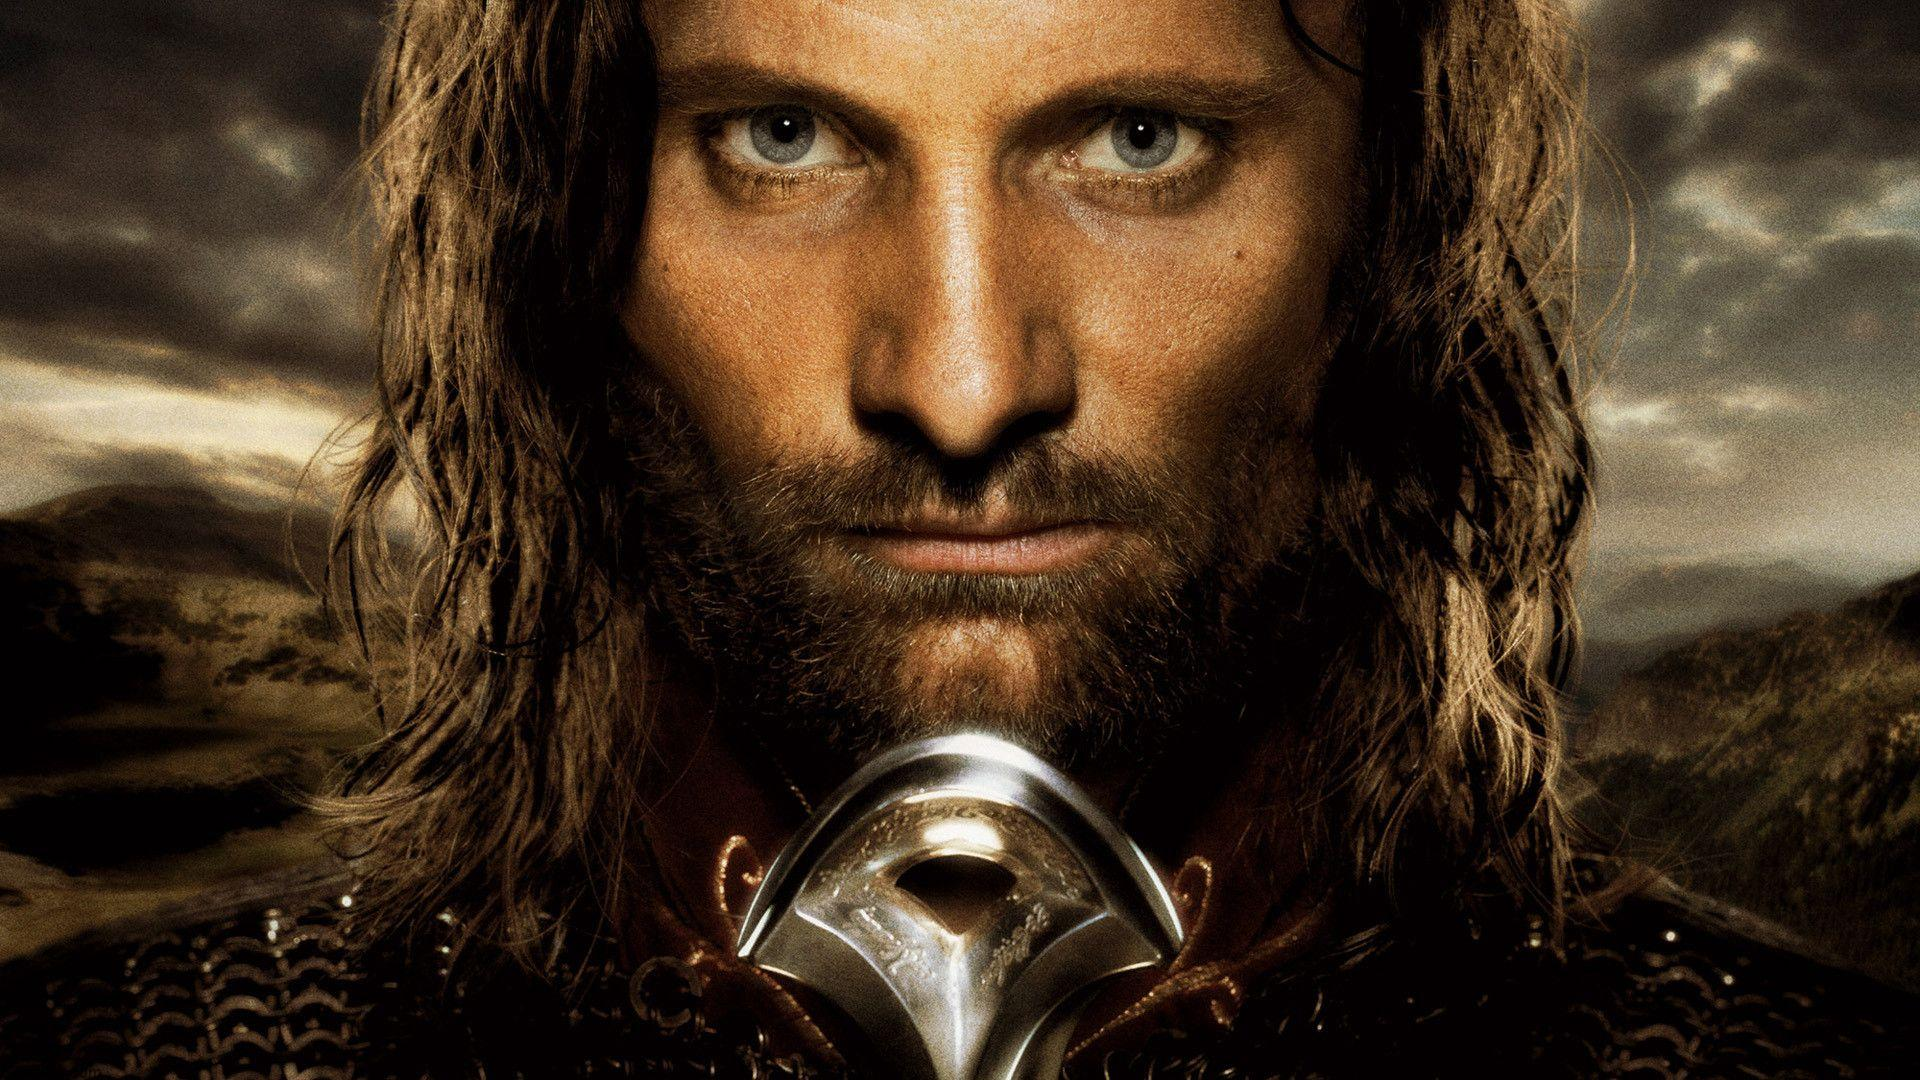 Aragorn The Lord Of The Rings Wallpaper #11 (4863) Movies | - bwalles ...